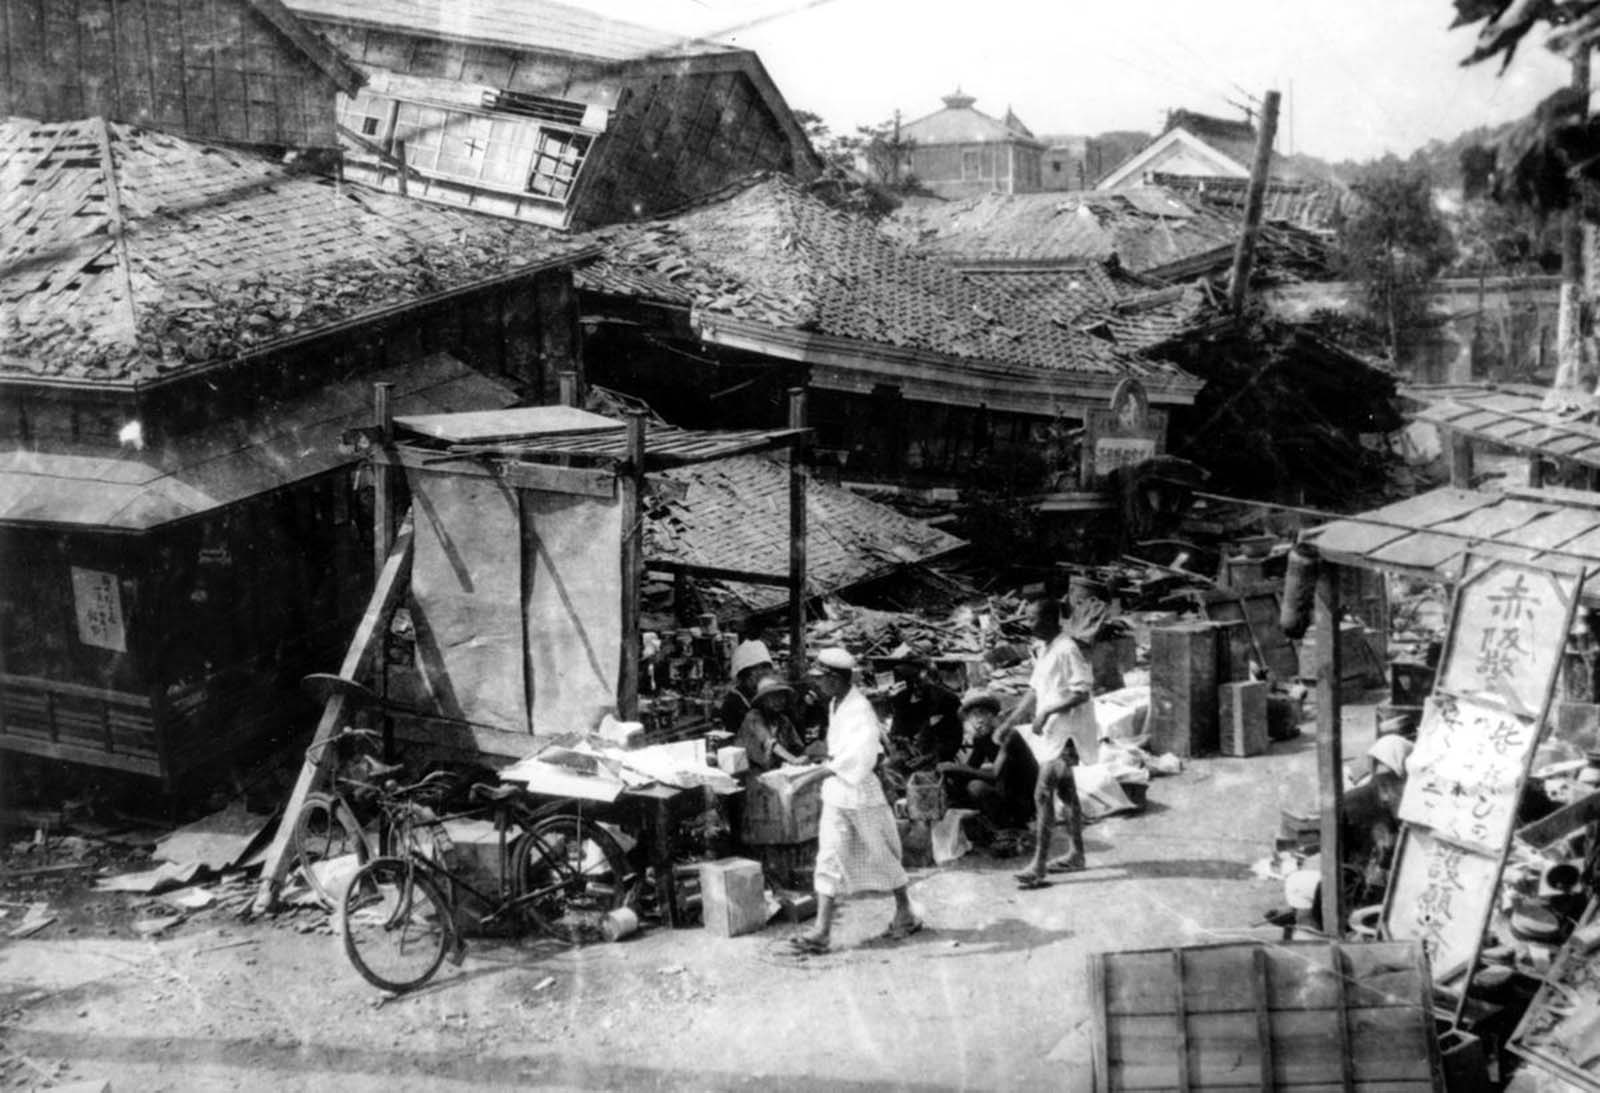 The Akasaka district, one of Tokyo's residential areas, lies in ruins after the 7.9 magnitude earthquake on Sept. 1, 1923.